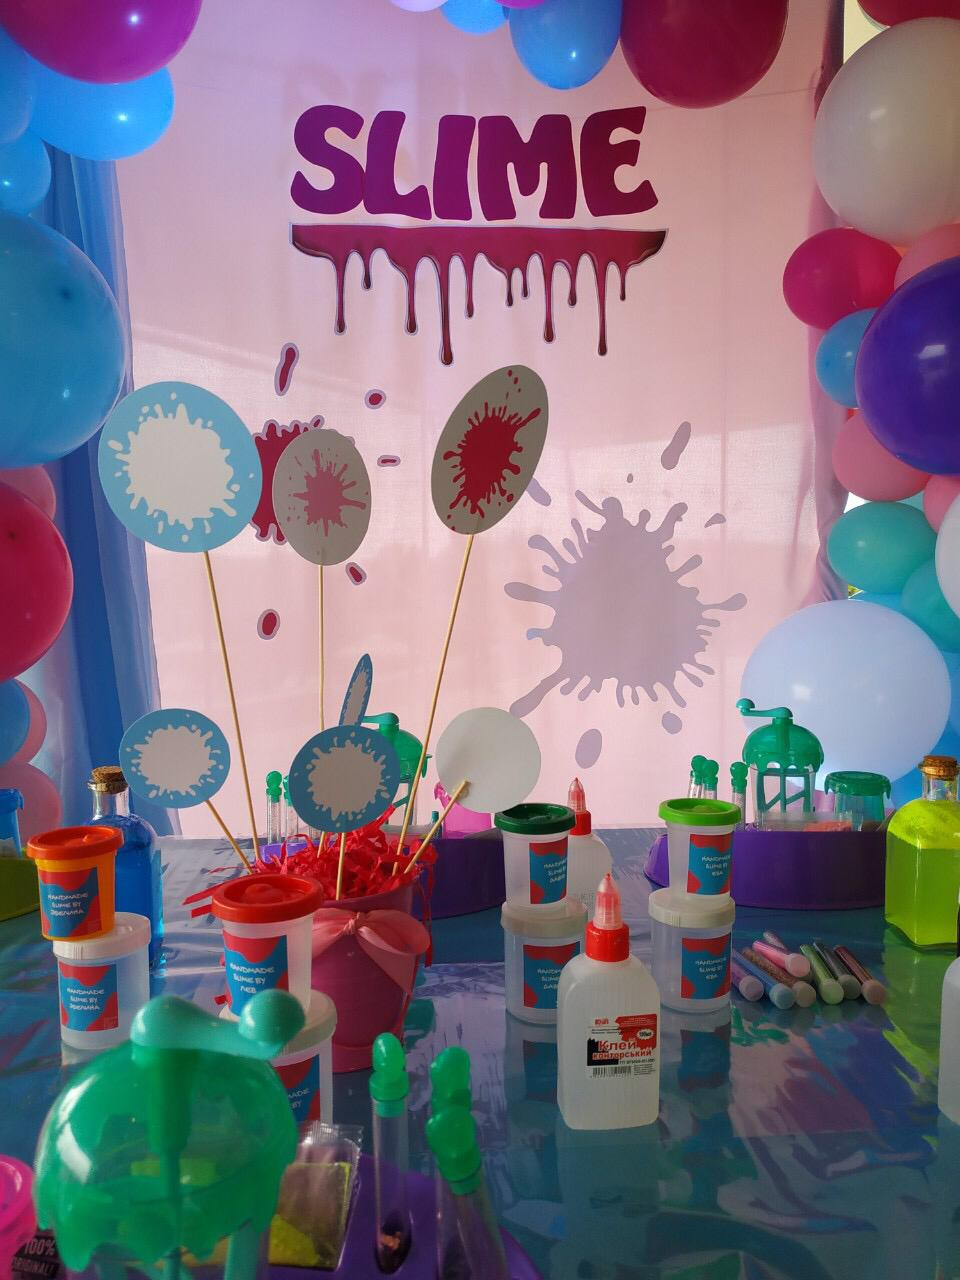 event birthday party barcelona slime decoration